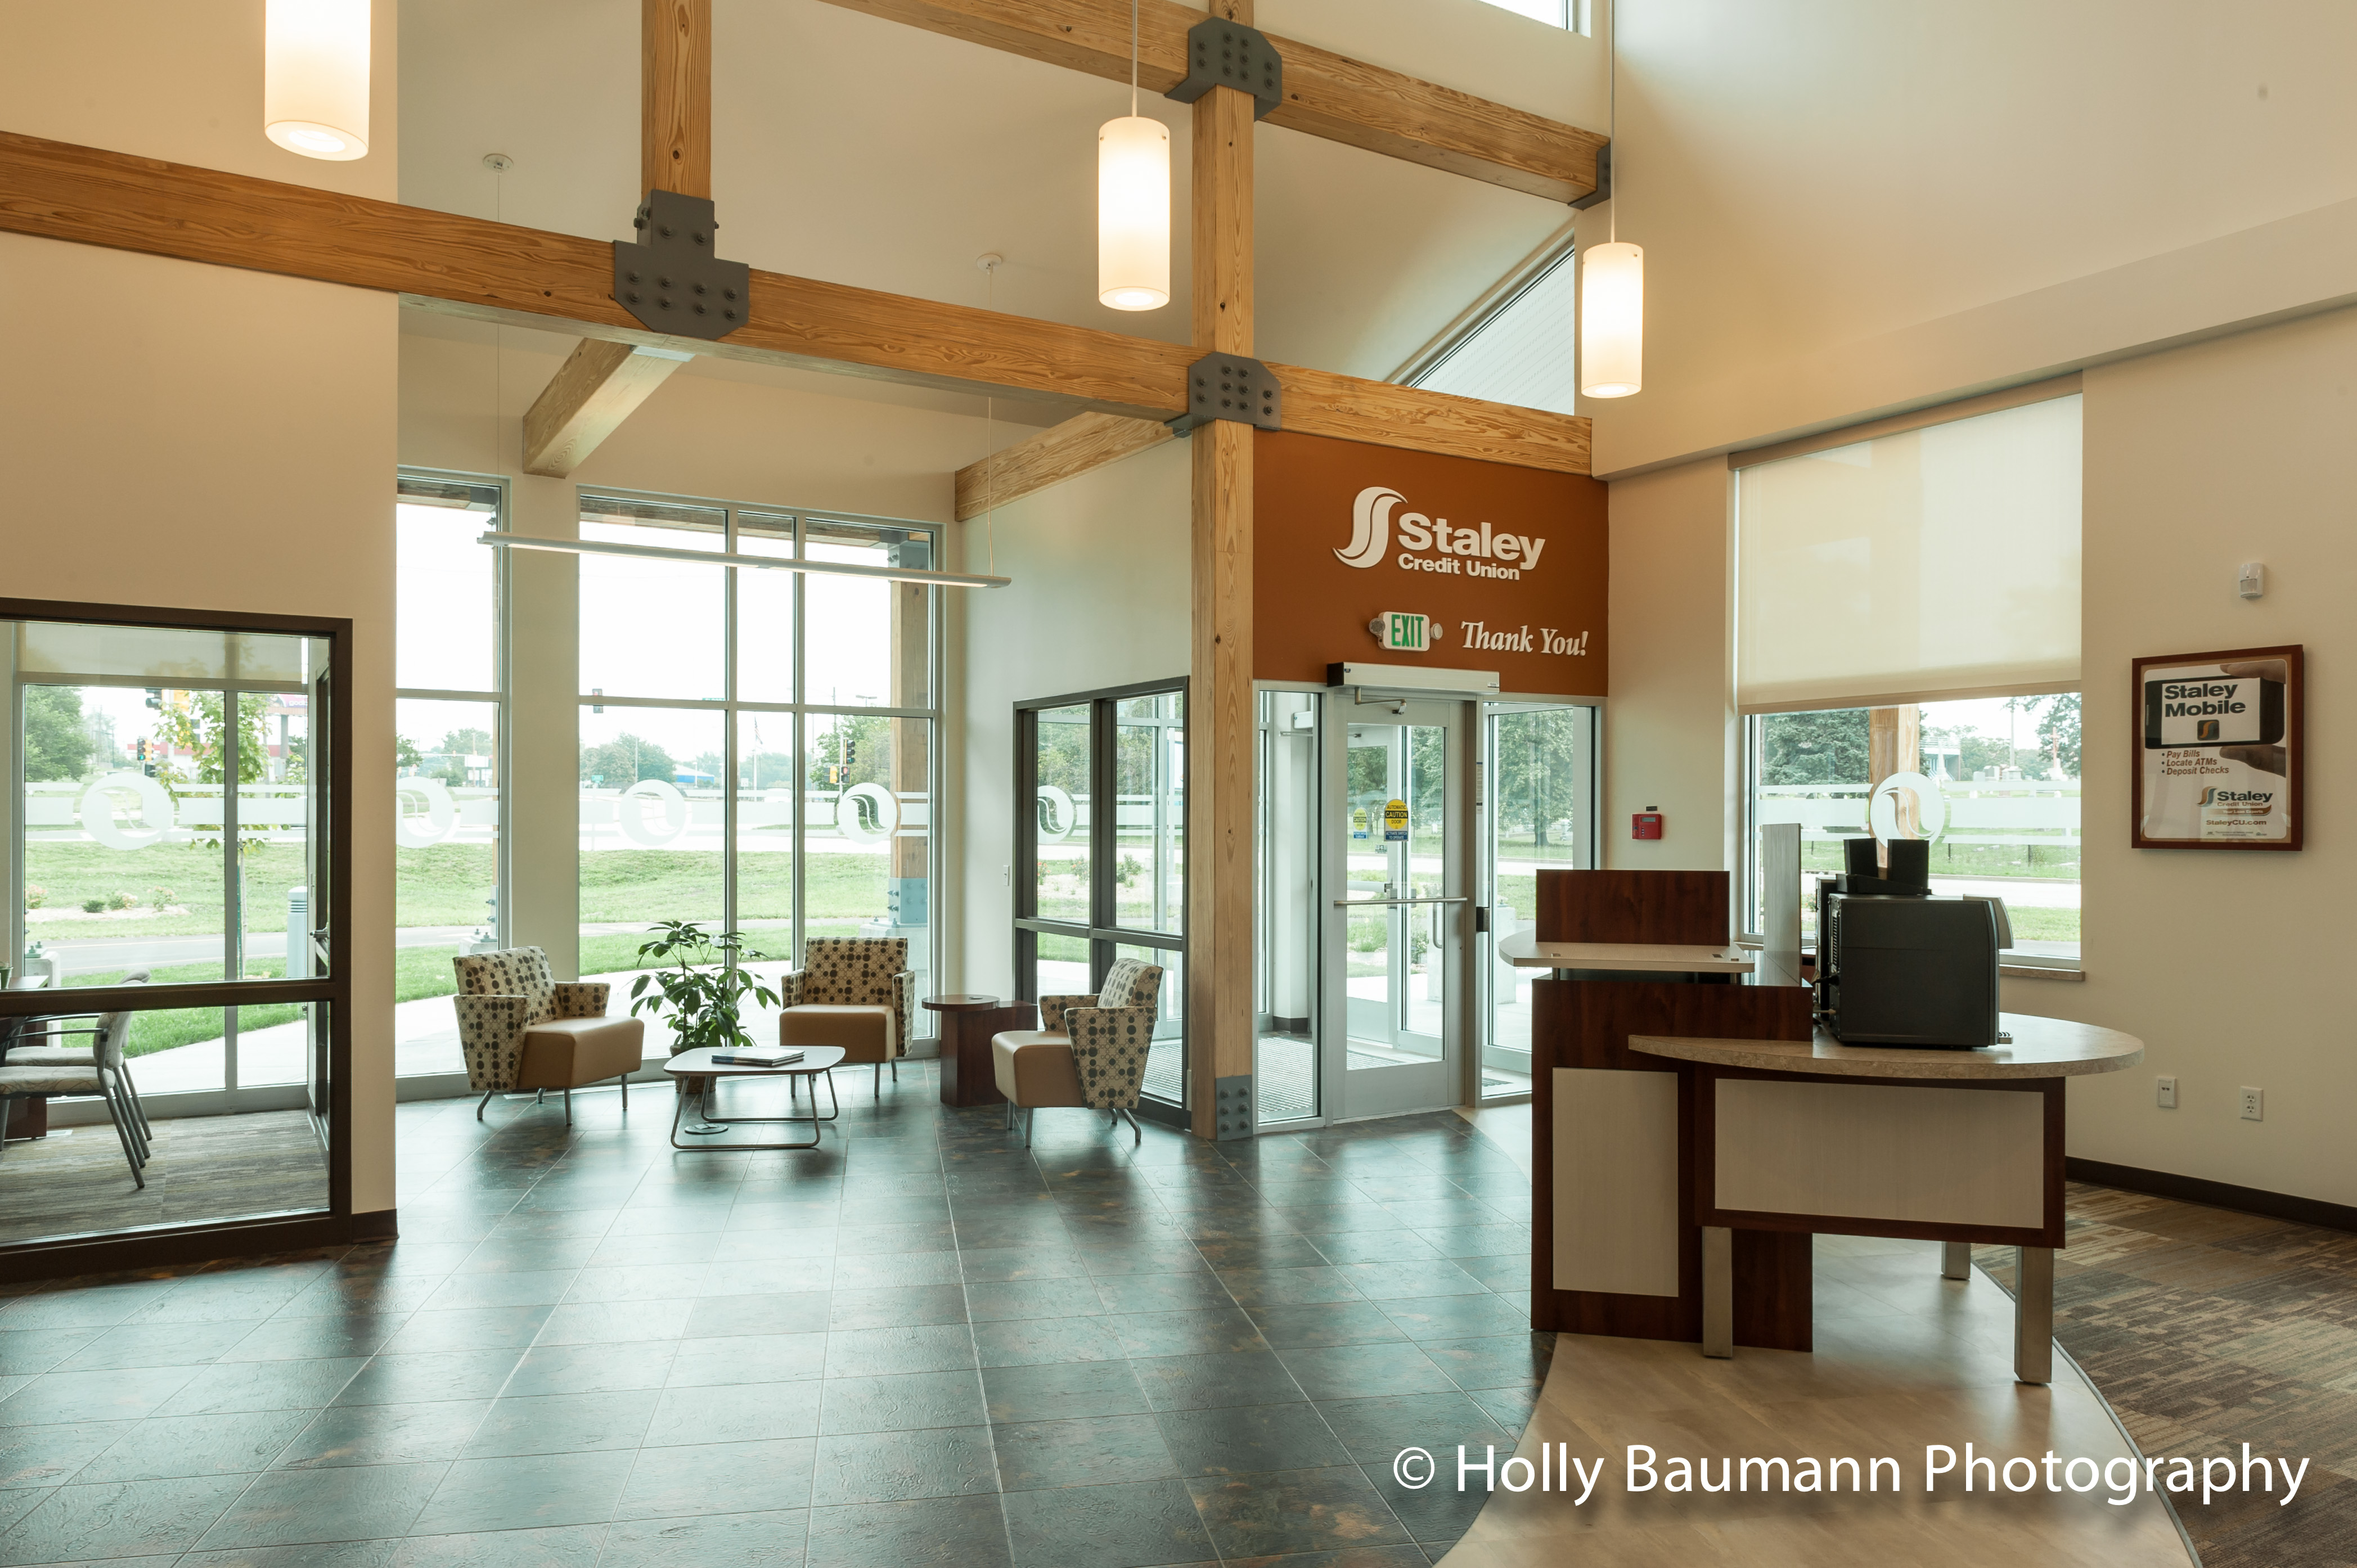 New Staley Credit Union Branch in Decatur IL  Interiors   Exteriors     20140821 BlogPost LaMacchiaGroup StaleyCreditUnion 1